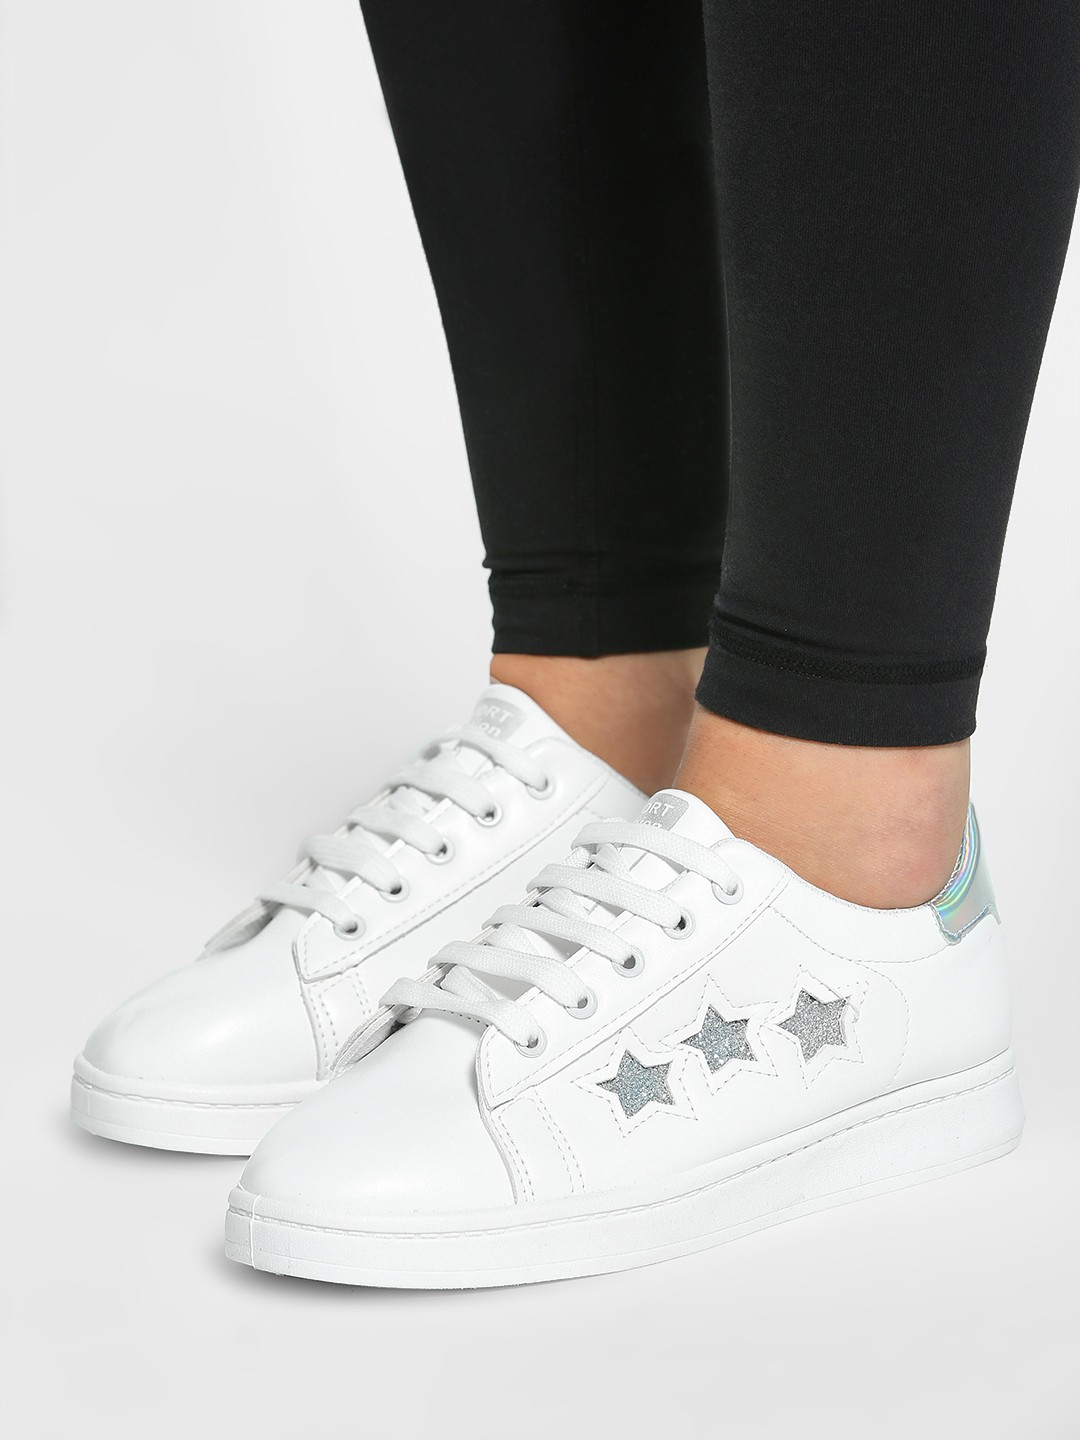 EmmaCloth White Holographic Tab Glitter Star Sneakers 1